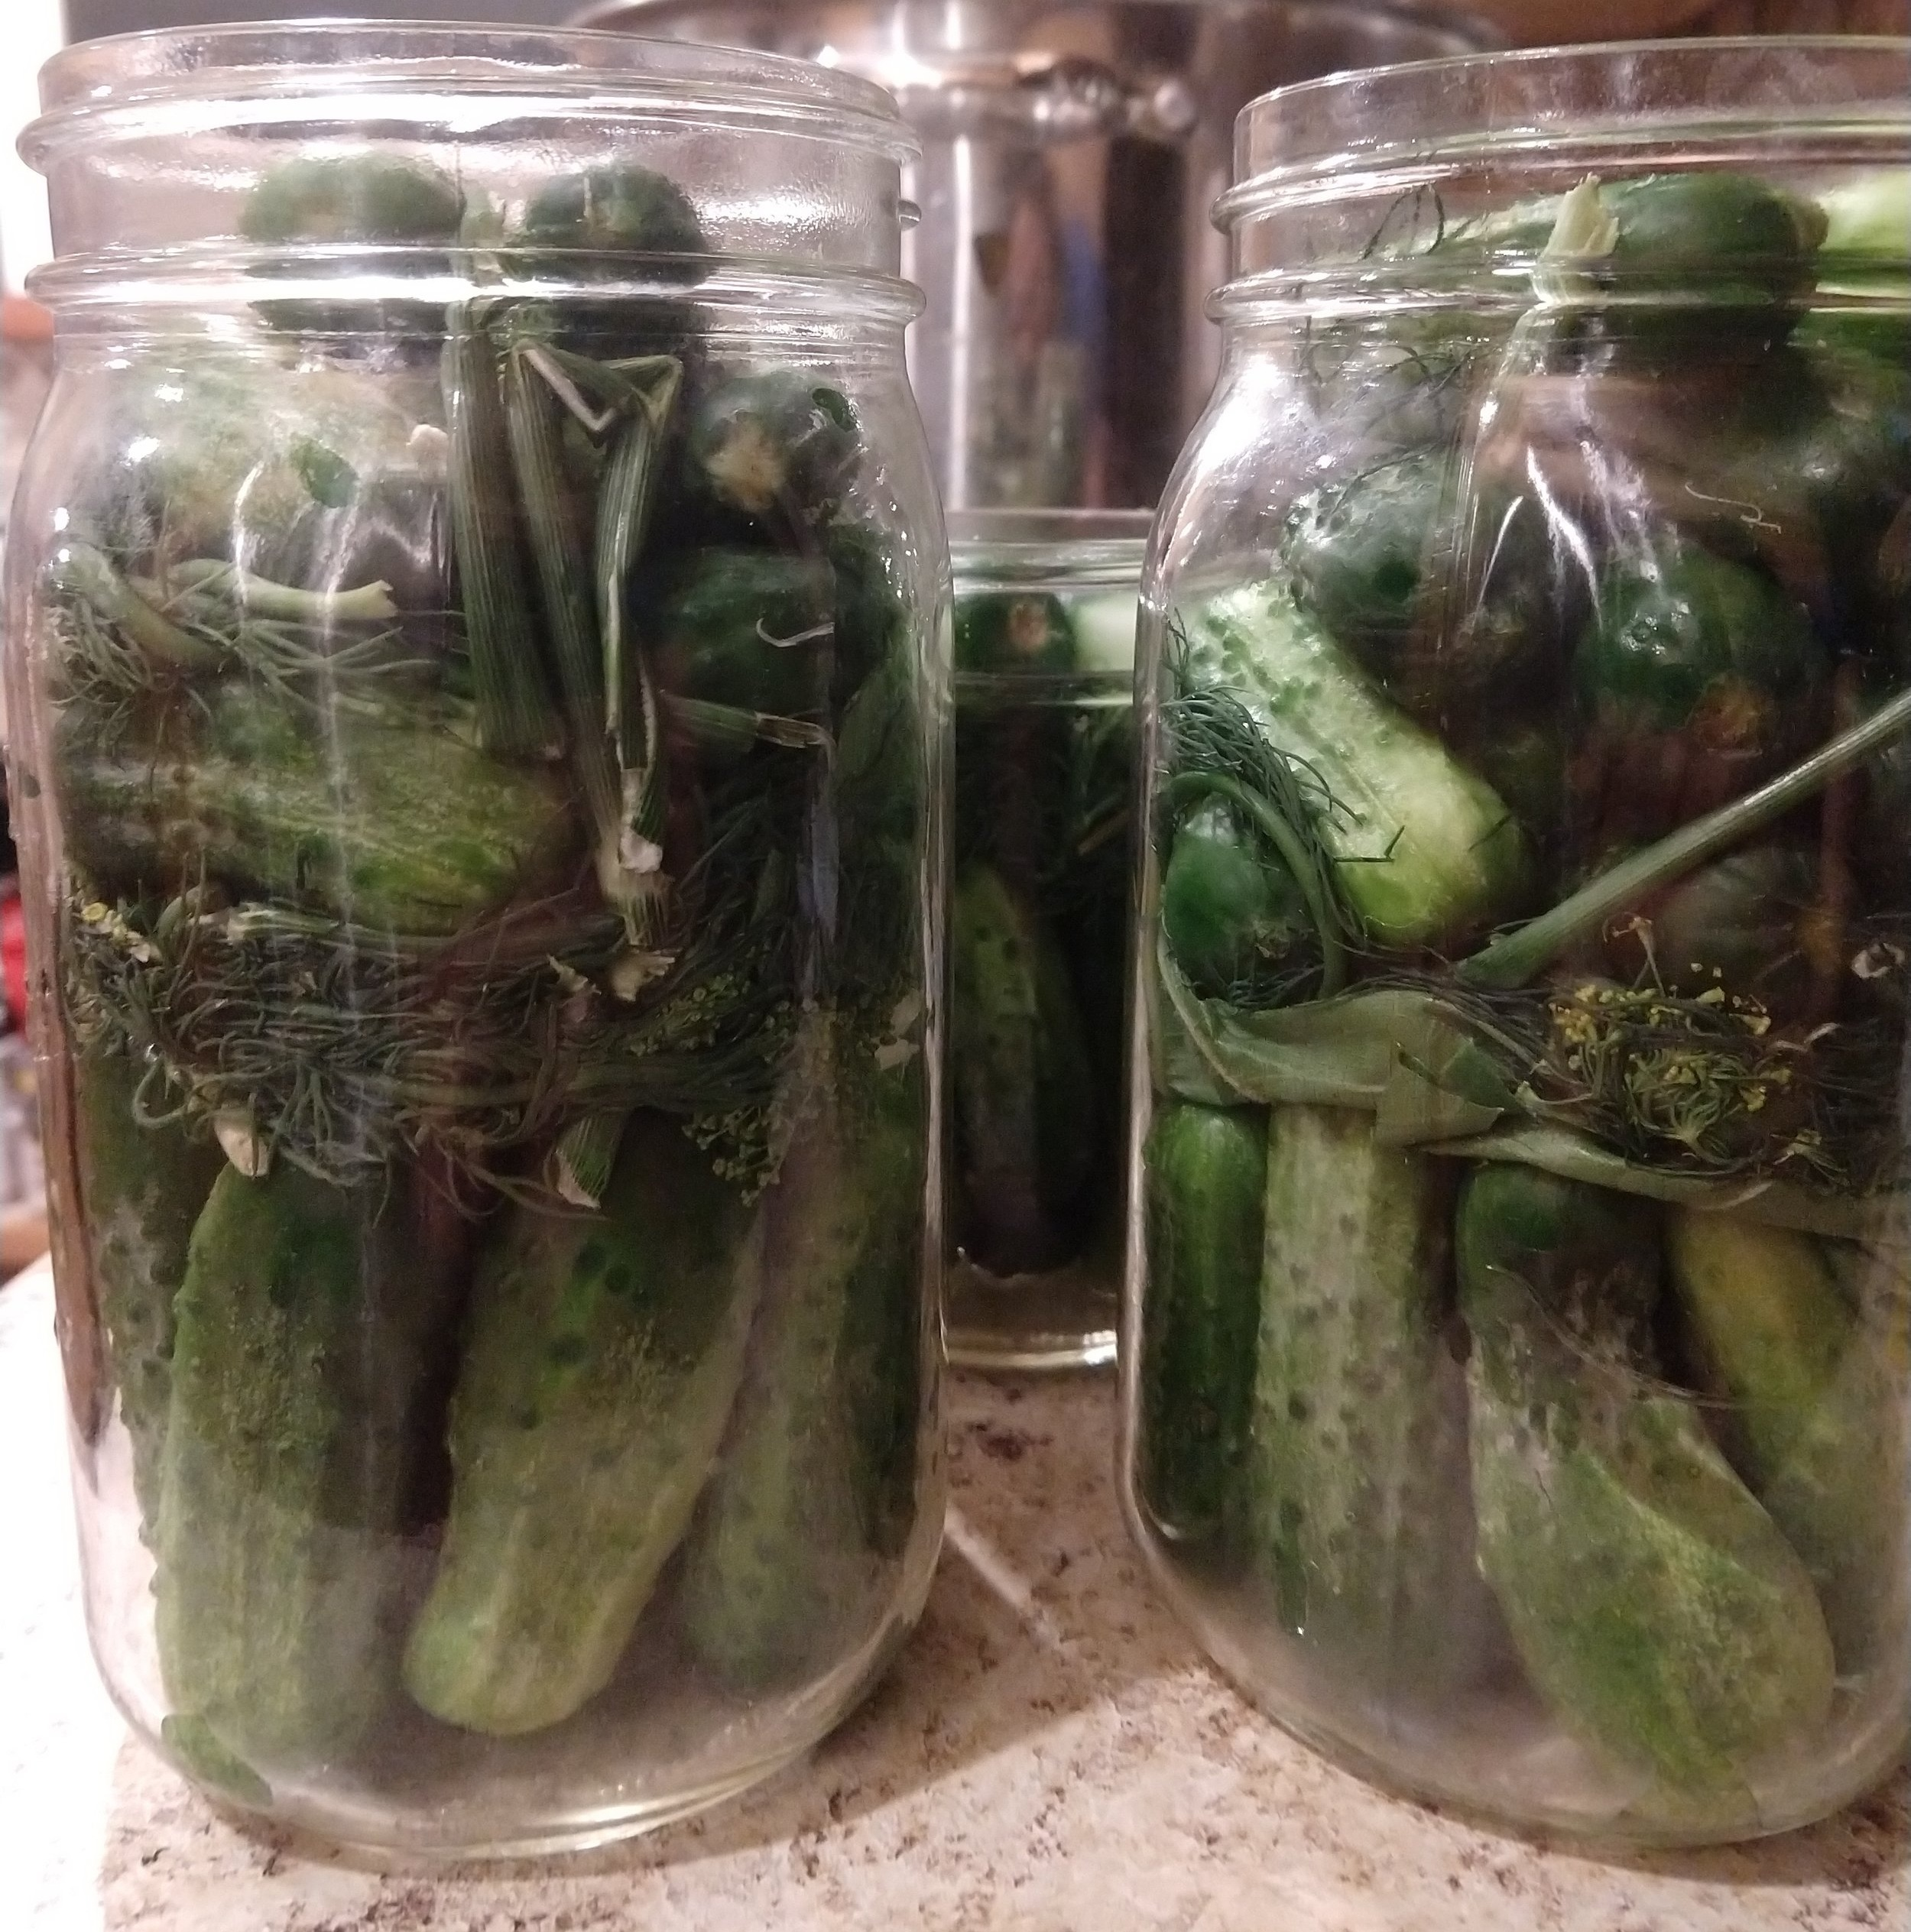 We stuff as many pickles in each jar before adding the brine.